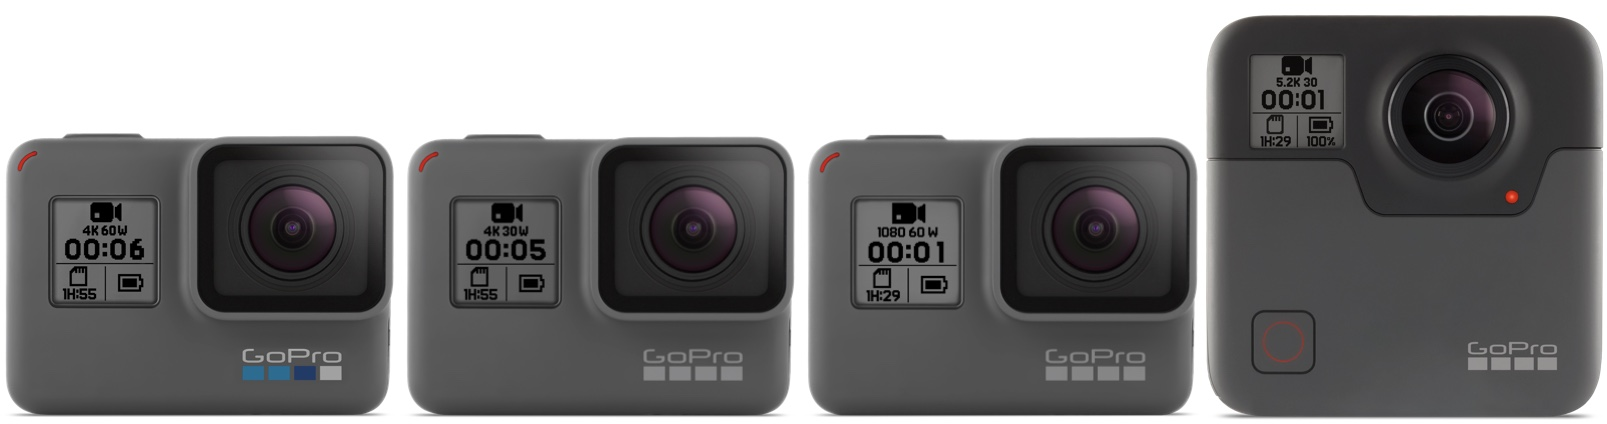 Recover videos from destroyed GoPro camera  Fix corrupt GoPro MP4 files